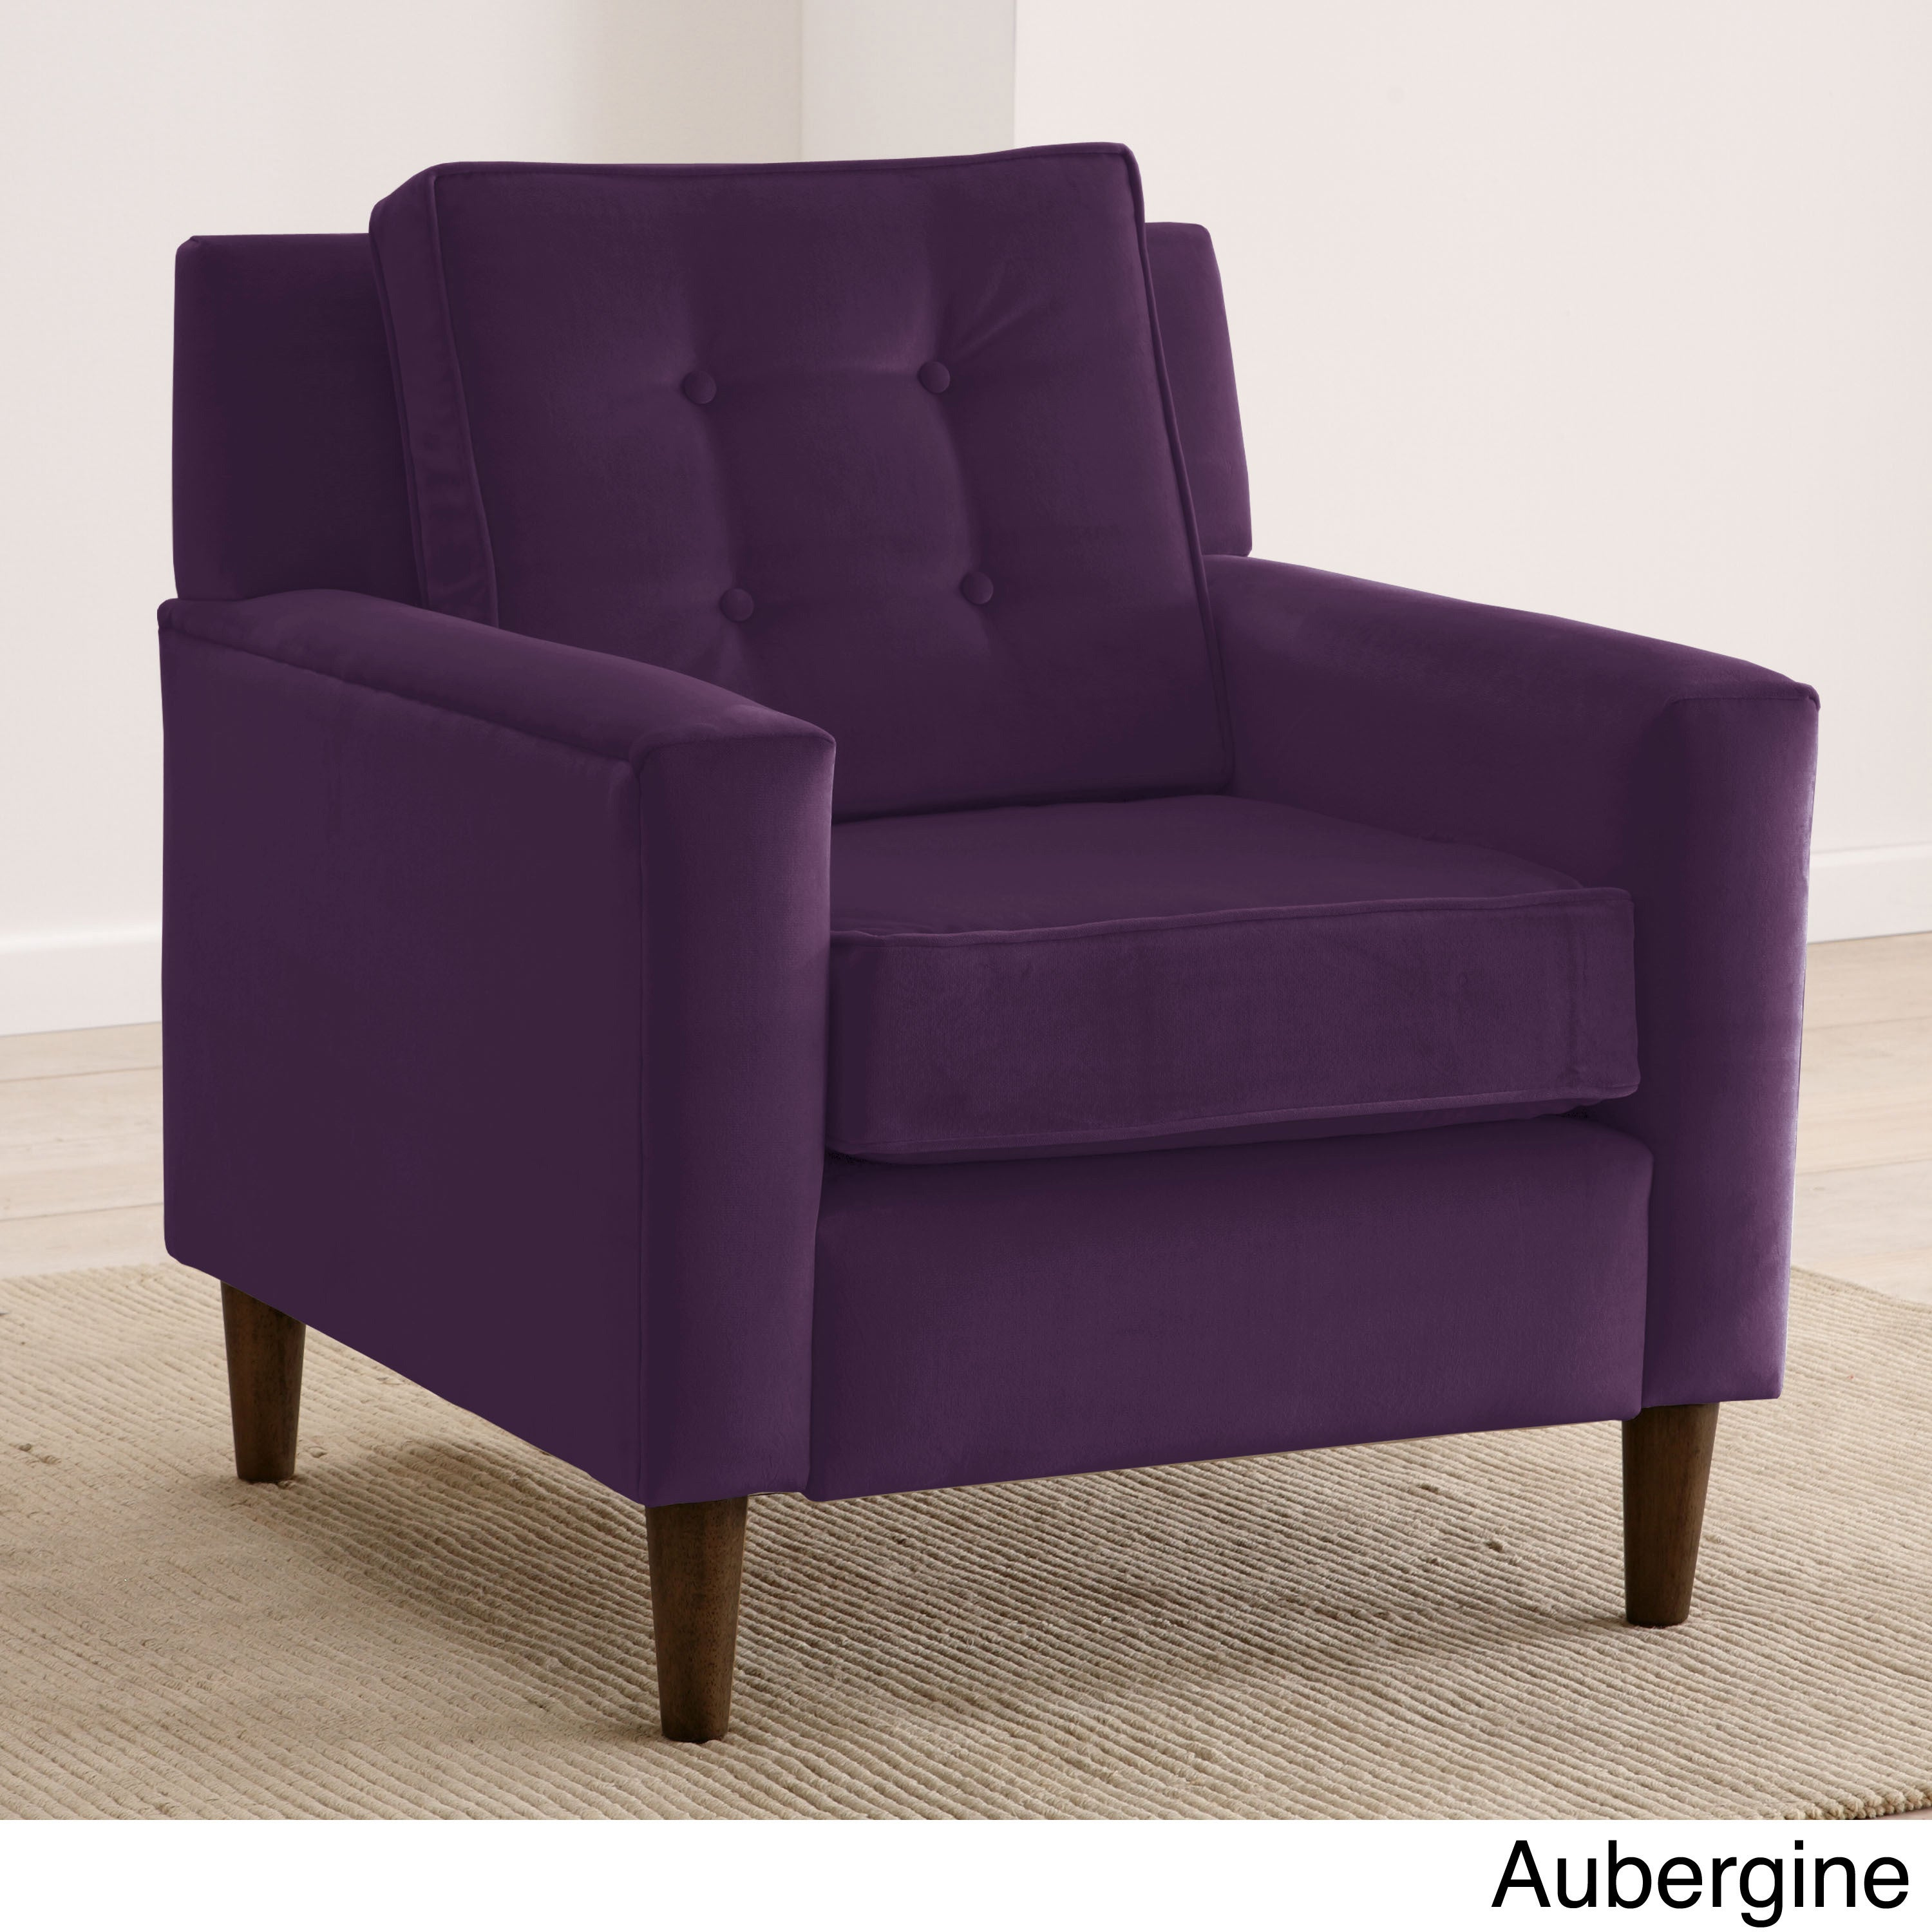 Accent Chairs Purple Living Room Online At Our Best Furniture Deals